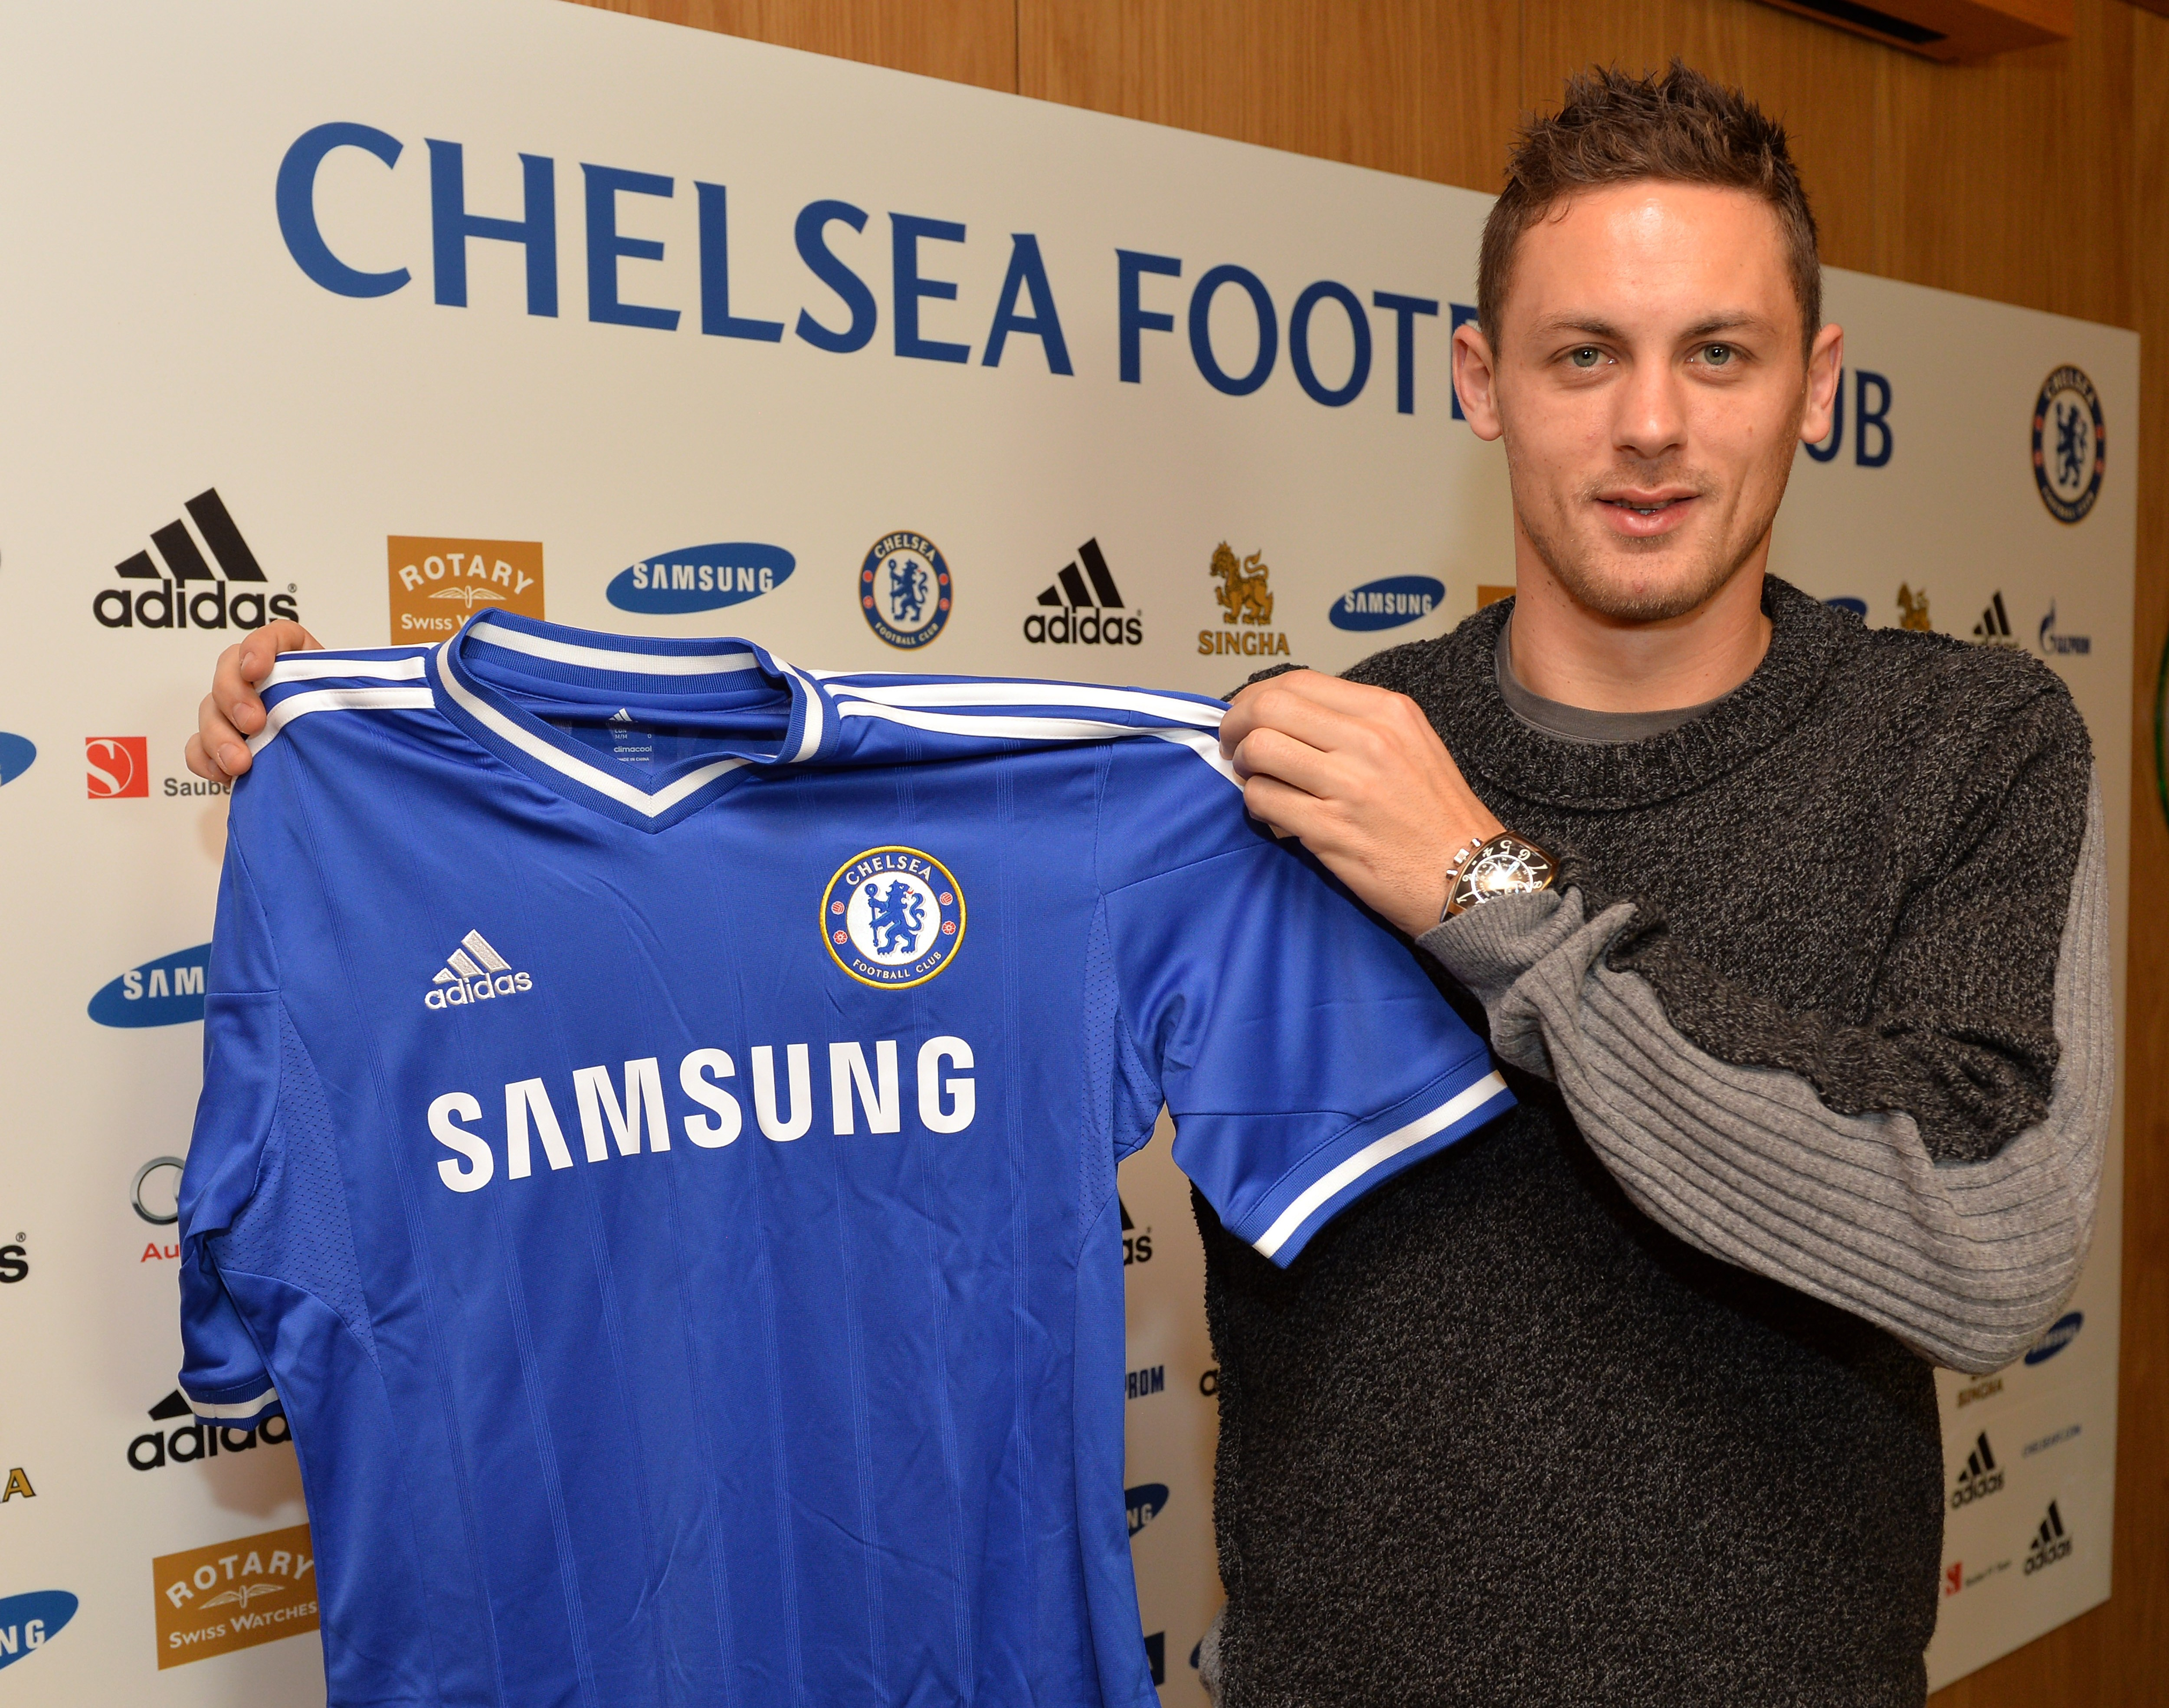 Where will new signing Nemanja Matic fit into Chelsea's midfield?